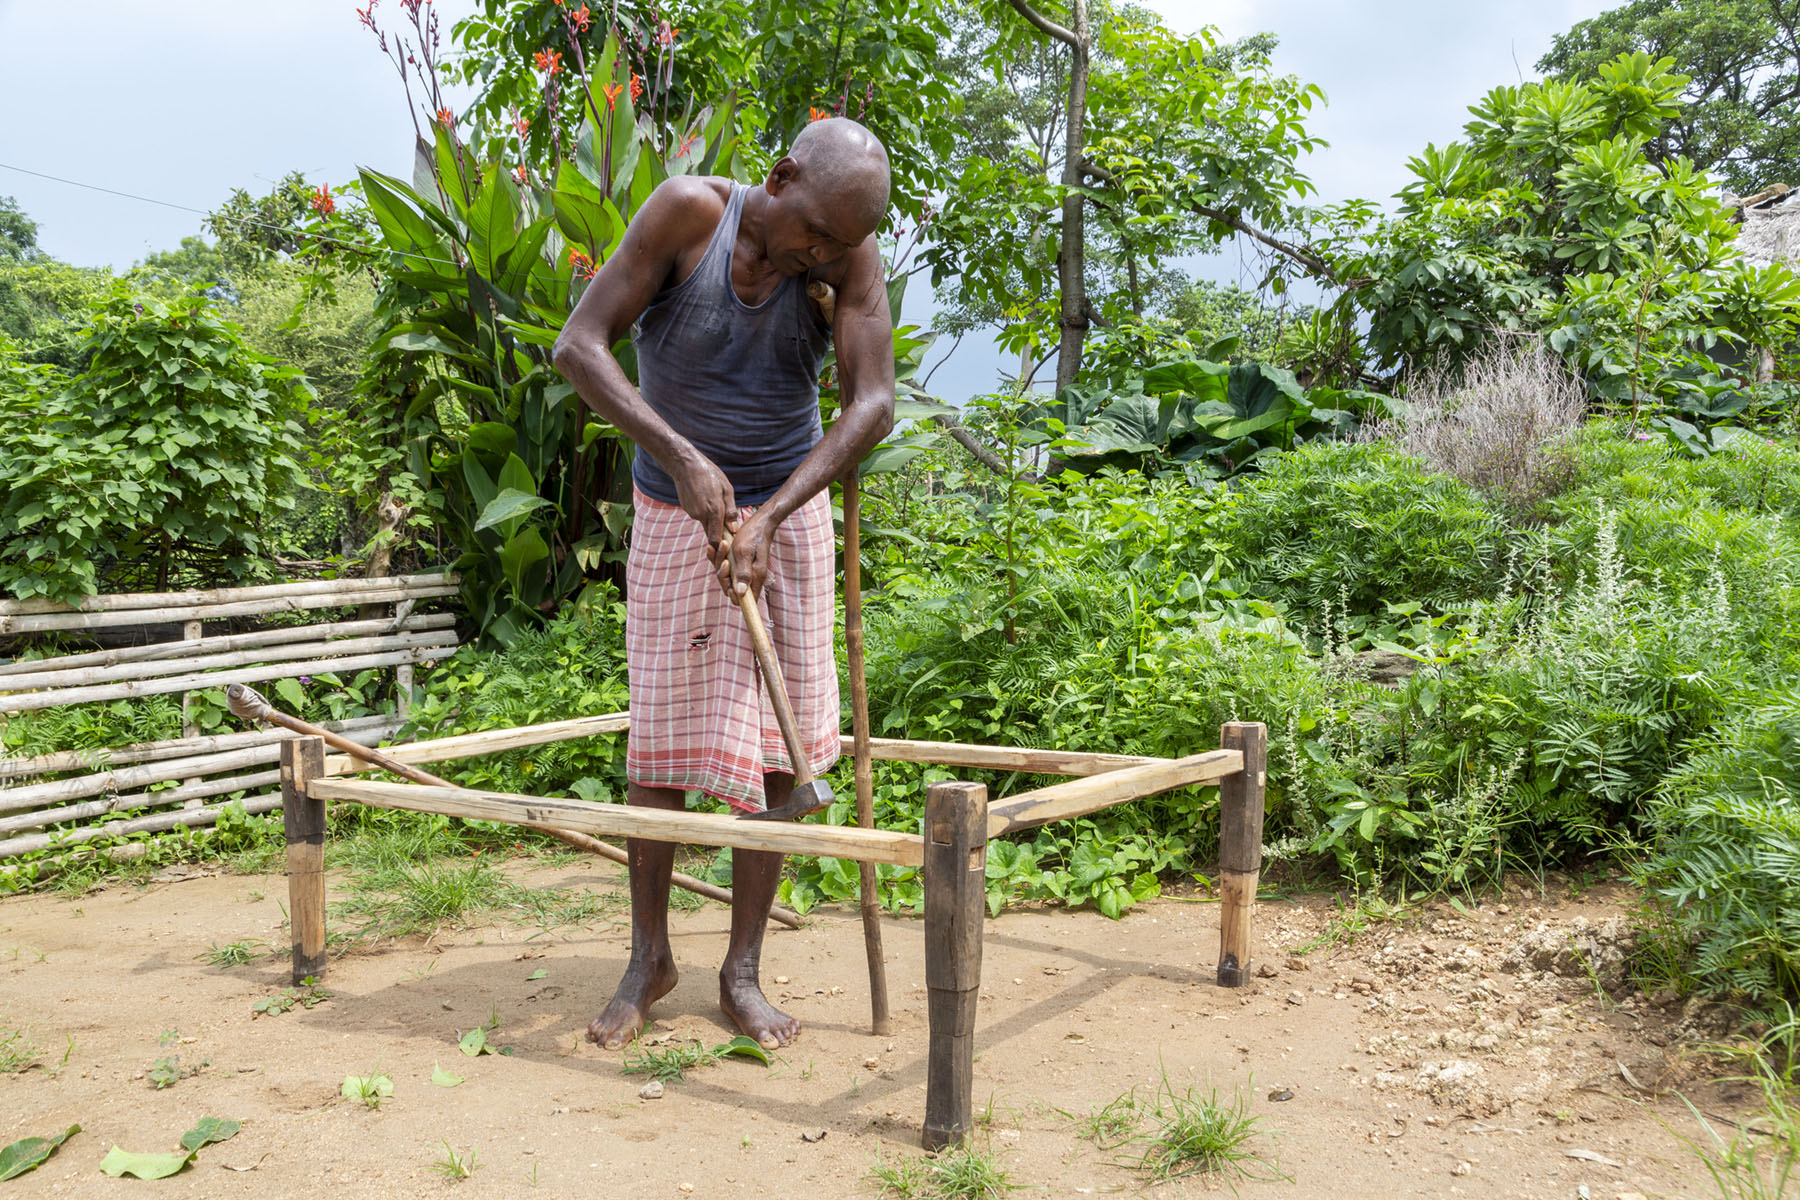 Suren is standing outdoors, inside the bare wooden frame of a cot that he is making. He is looking down, using both hands to grip the long wooden handle of a hammer. Behind him are trees and lush green plants including a canna with red flowers.